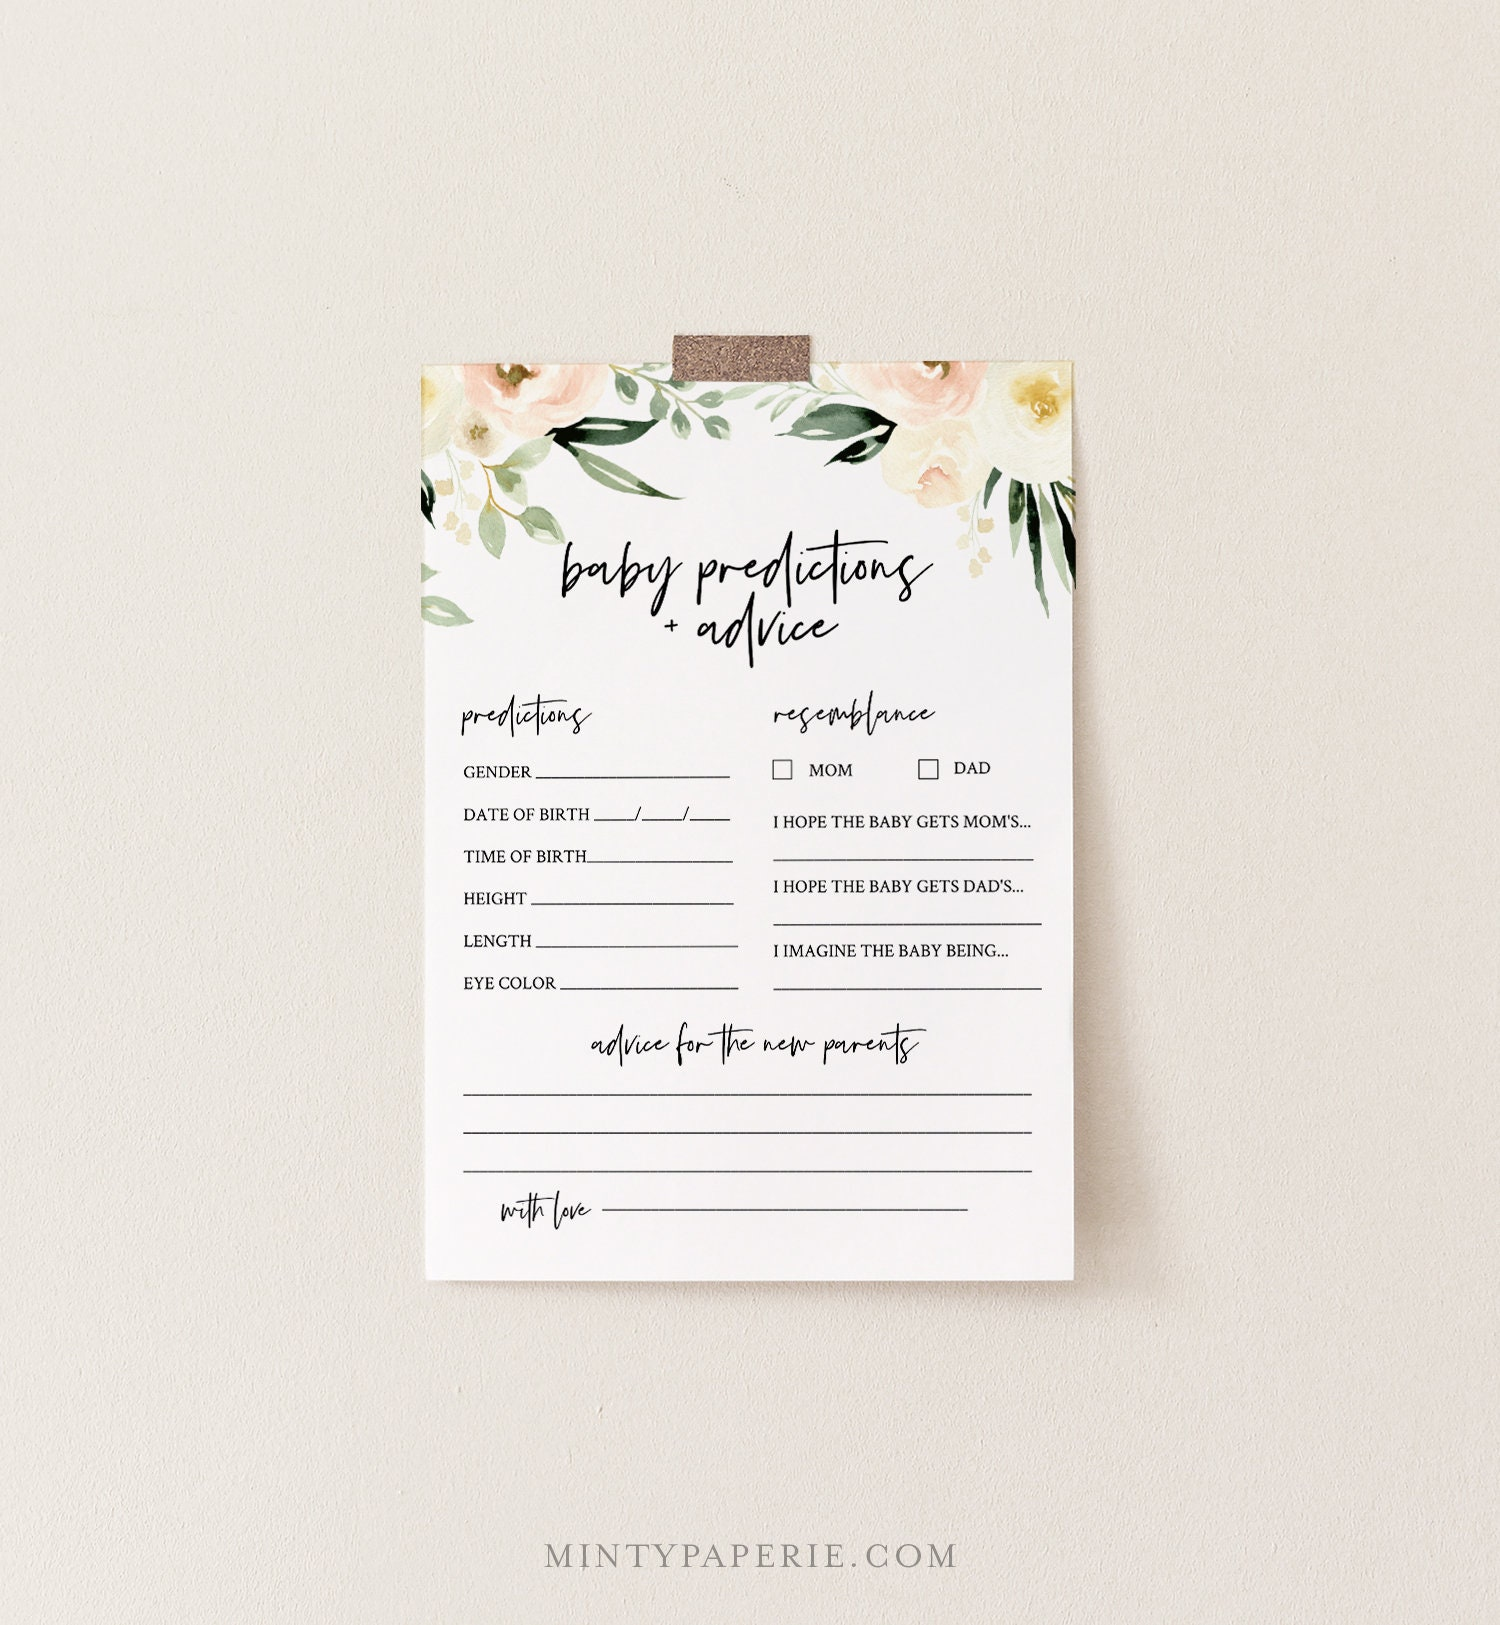 Baby Predictions And Advice Card Printable Boho Floral Baby